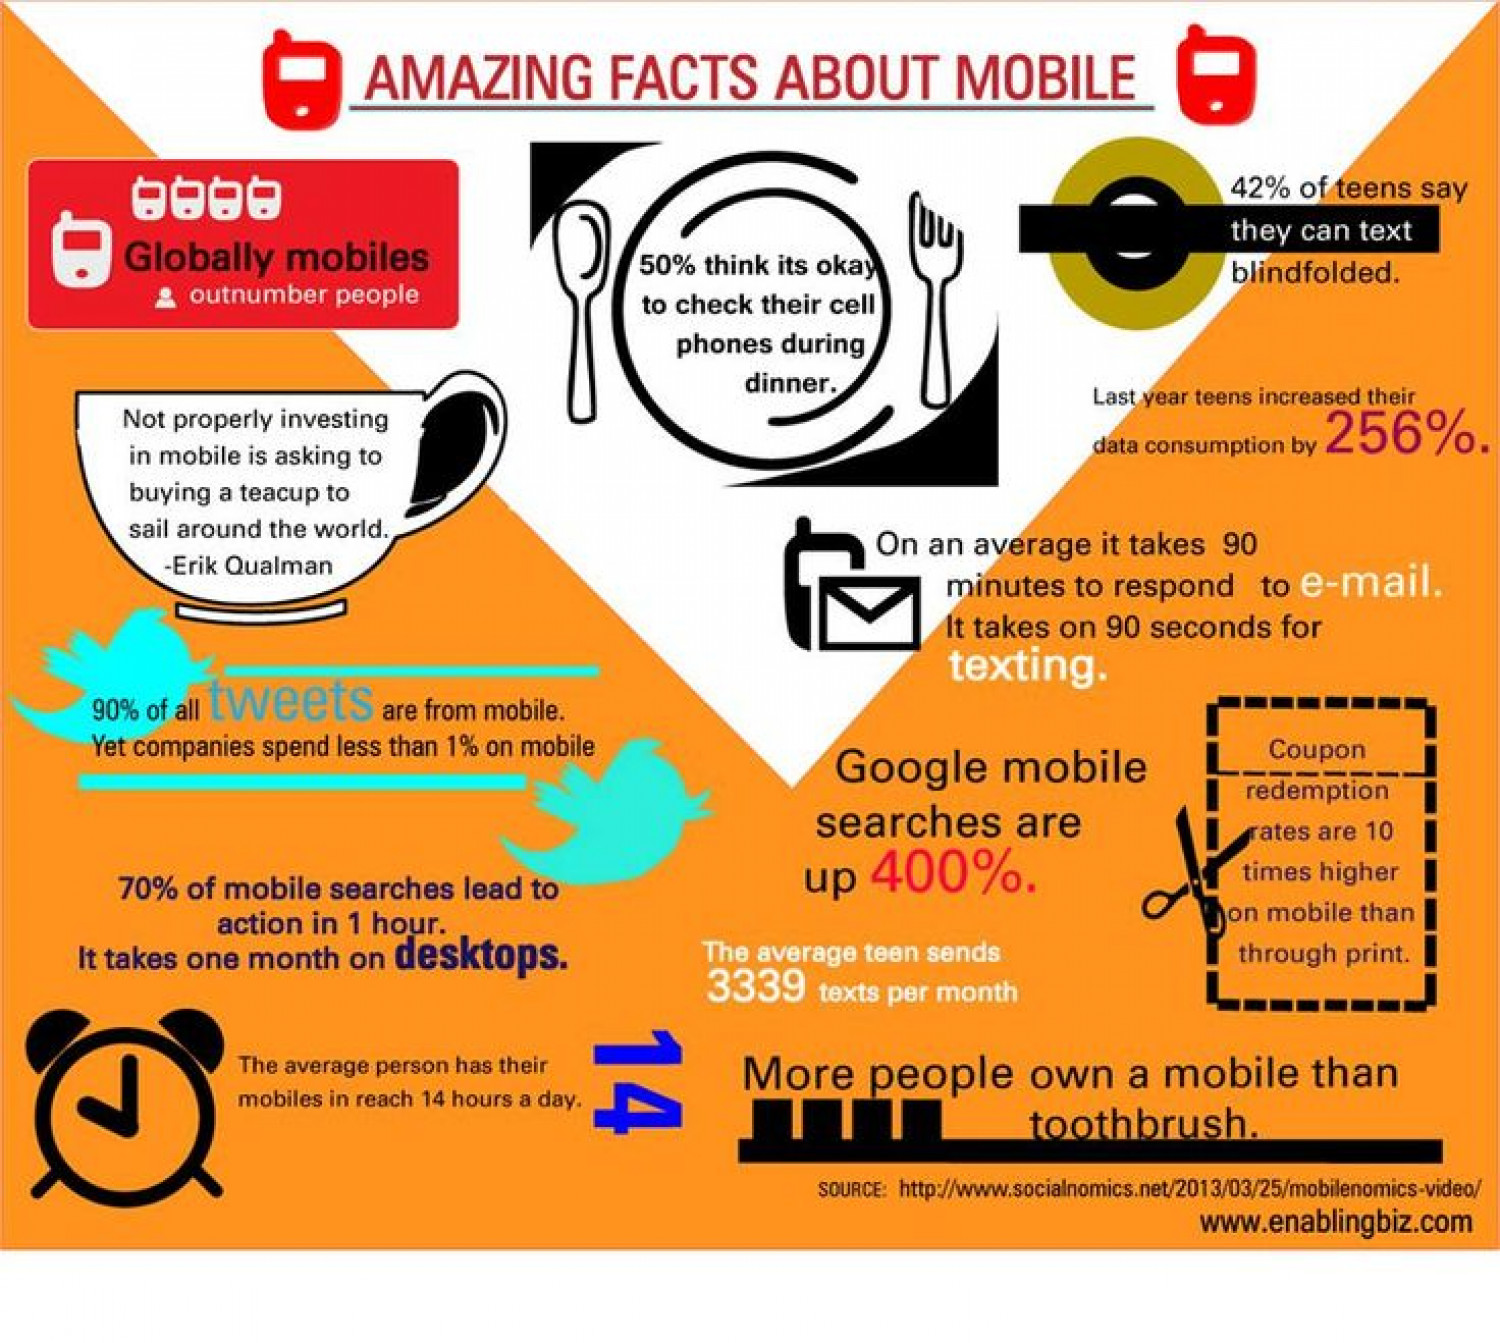 Amazing Facts about Mobile Infographic